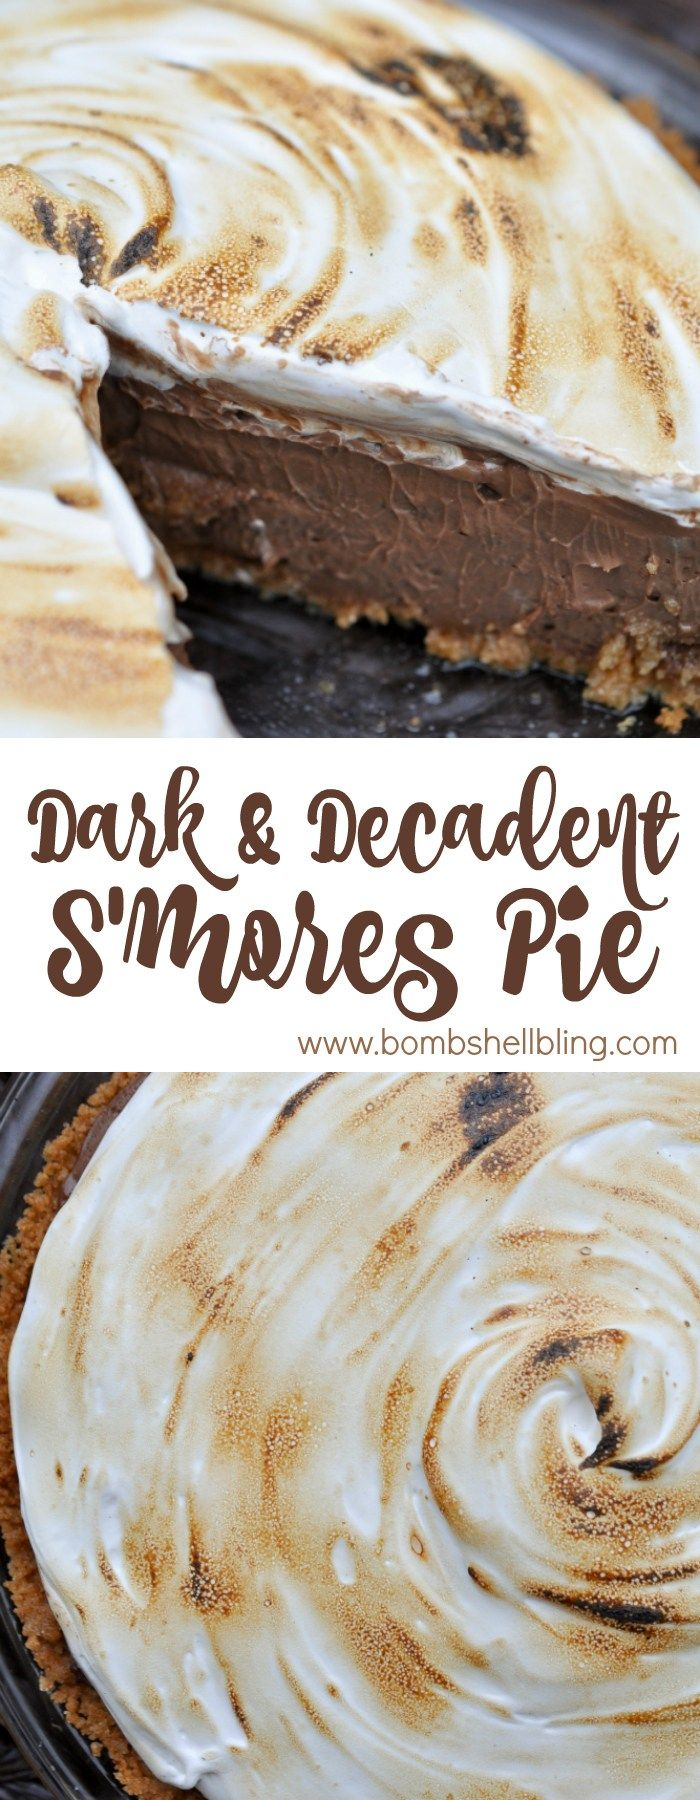 This decadent & dark chocolate s'mores pie takes a childhood favorite and turns it into a divine adult treat for the tastebuds!